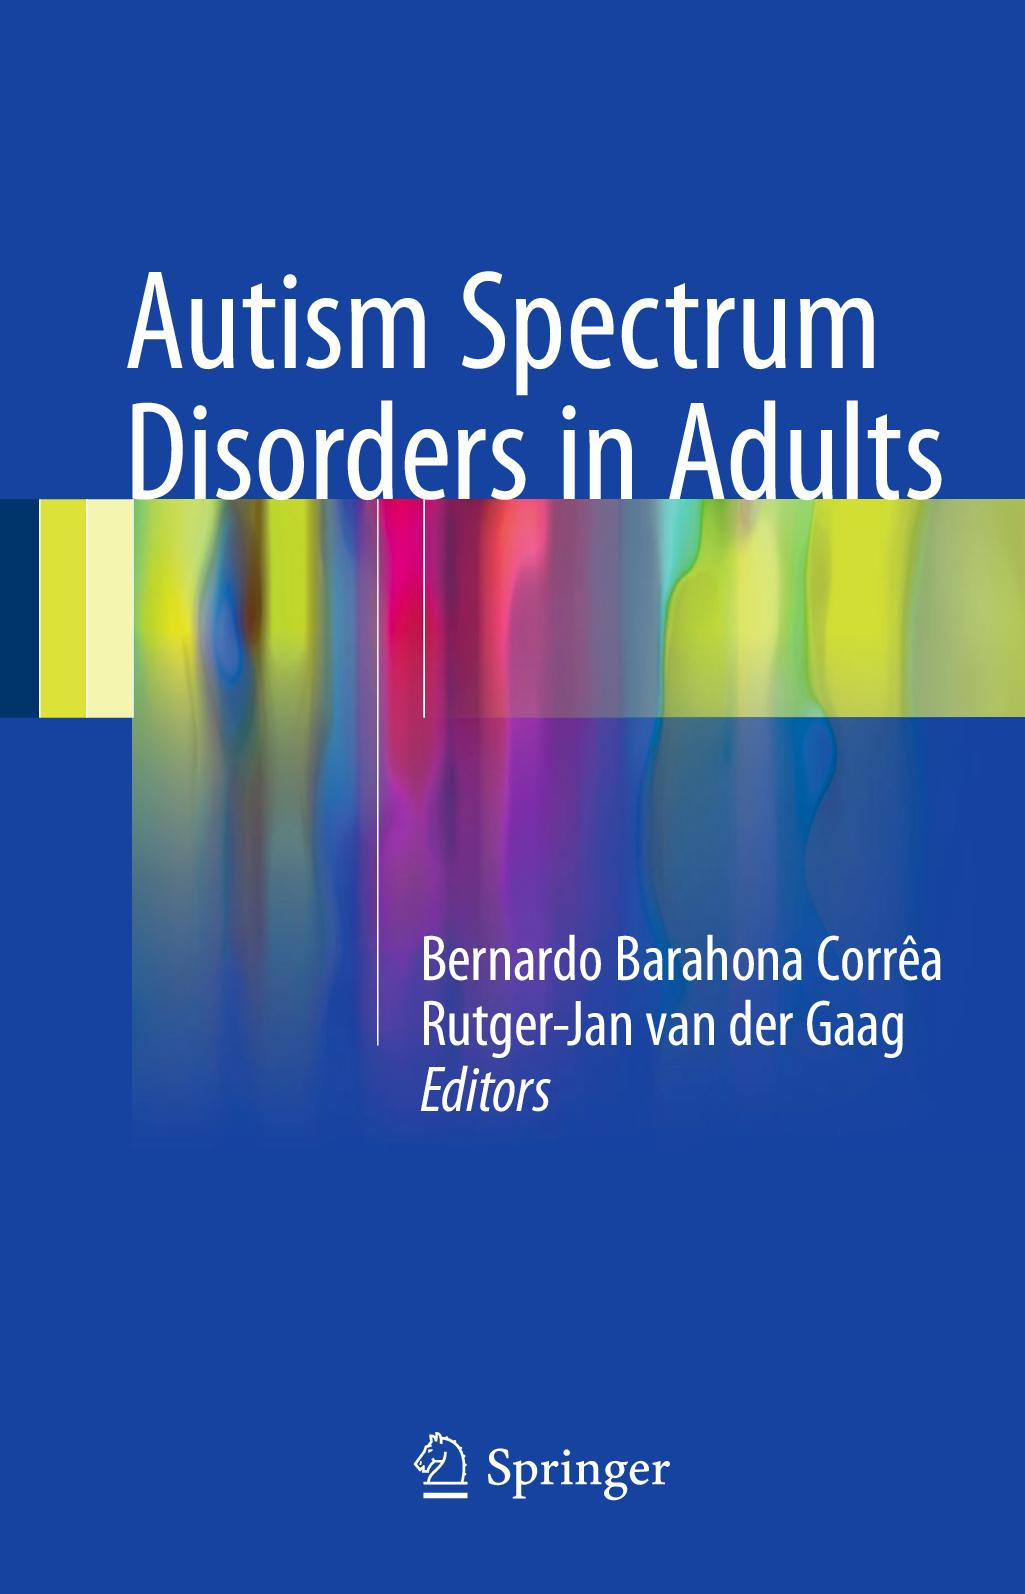 Calam O Autism Spectrum Disorders In Adults 2017